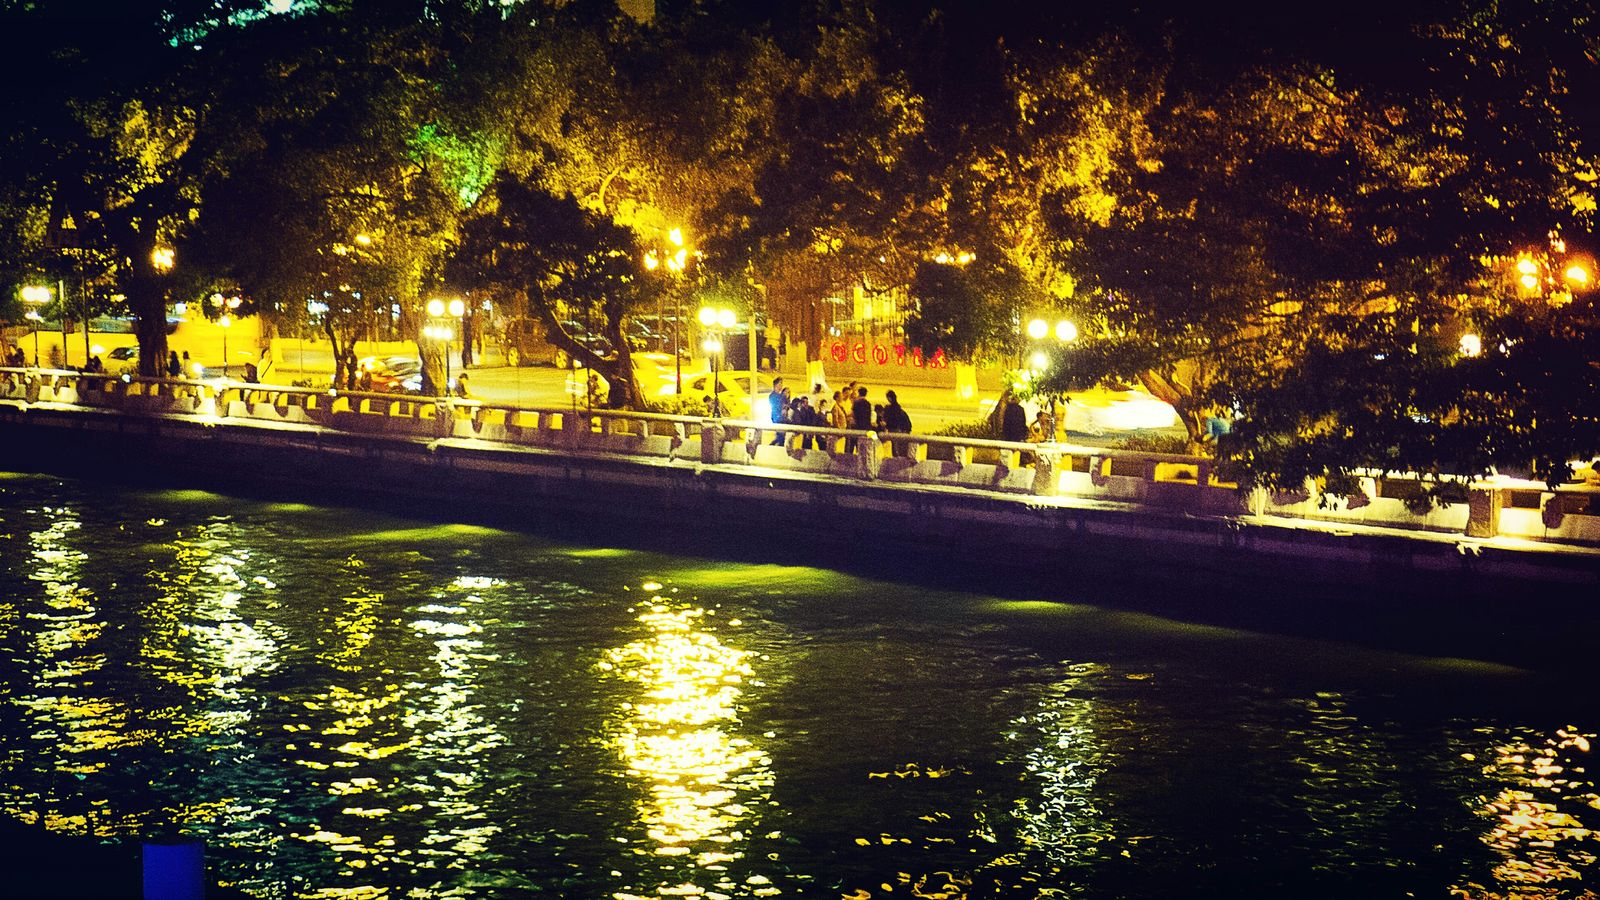 Autumn Collection Autumn🍁🍁🍁 Hello World Nightlife Nightphotography From Landmark Hotel,beside Zhujiang River,the Buildings Are Great Scenery Of Guangzhou❤ Zhujiang River Water System Guangzhou My City Lightroom